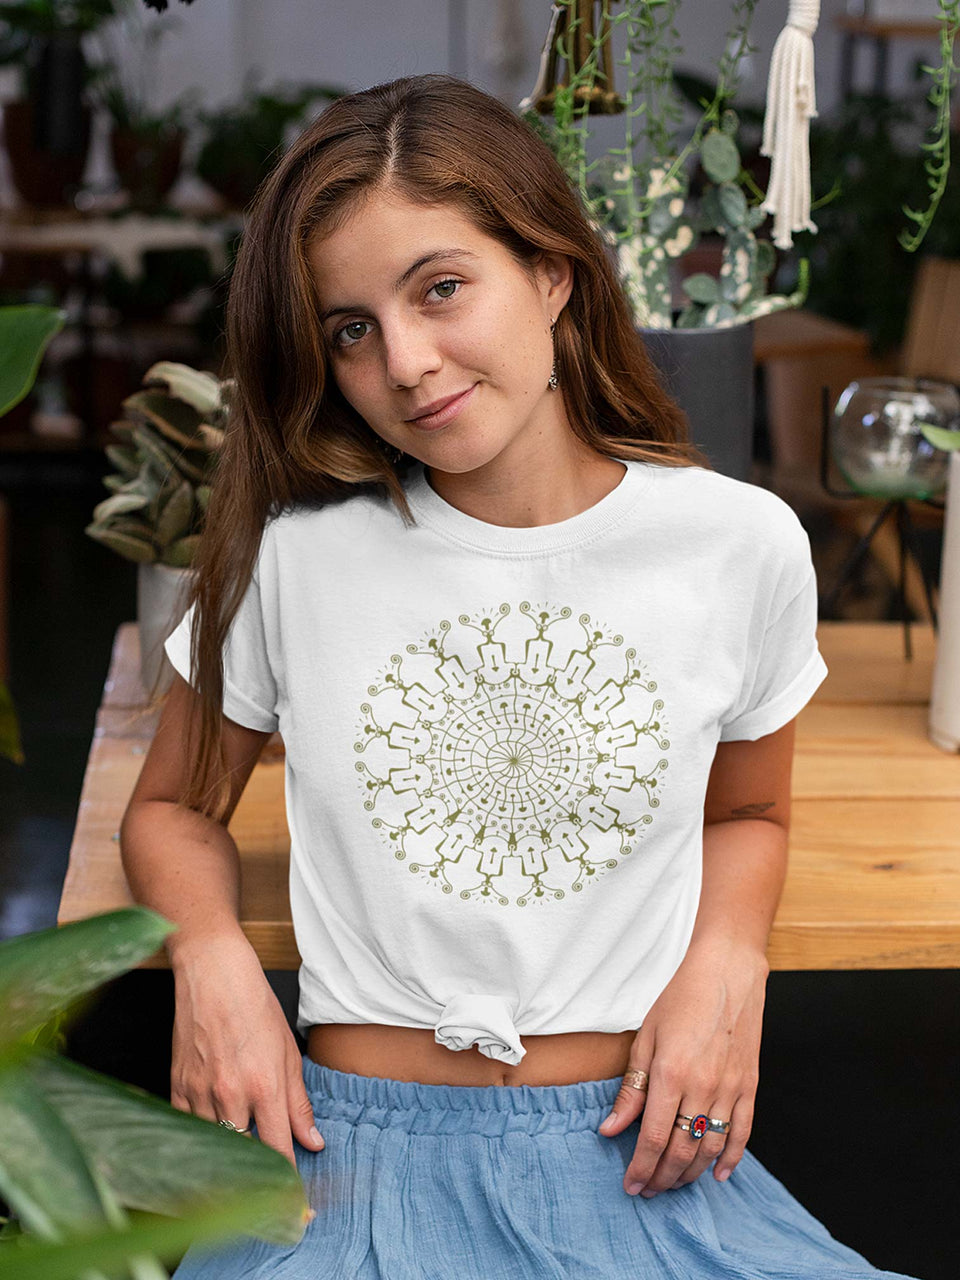 Shrooms Hora Glow Made to Order Women T-shirt - White